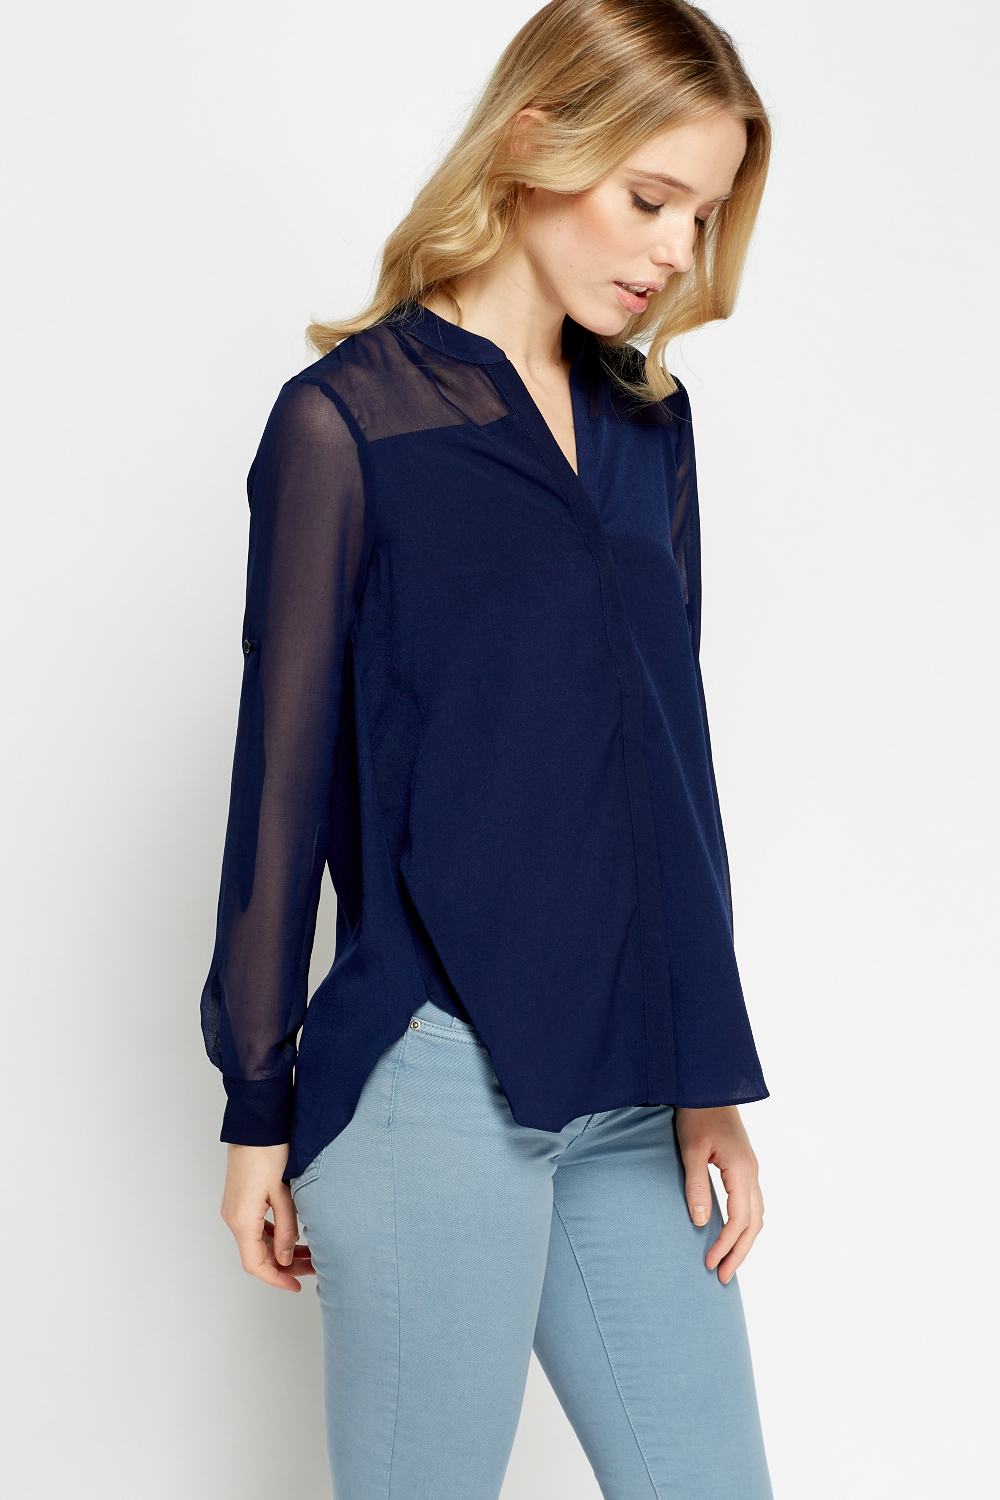 Sheer Tie Back Blouse Just 5